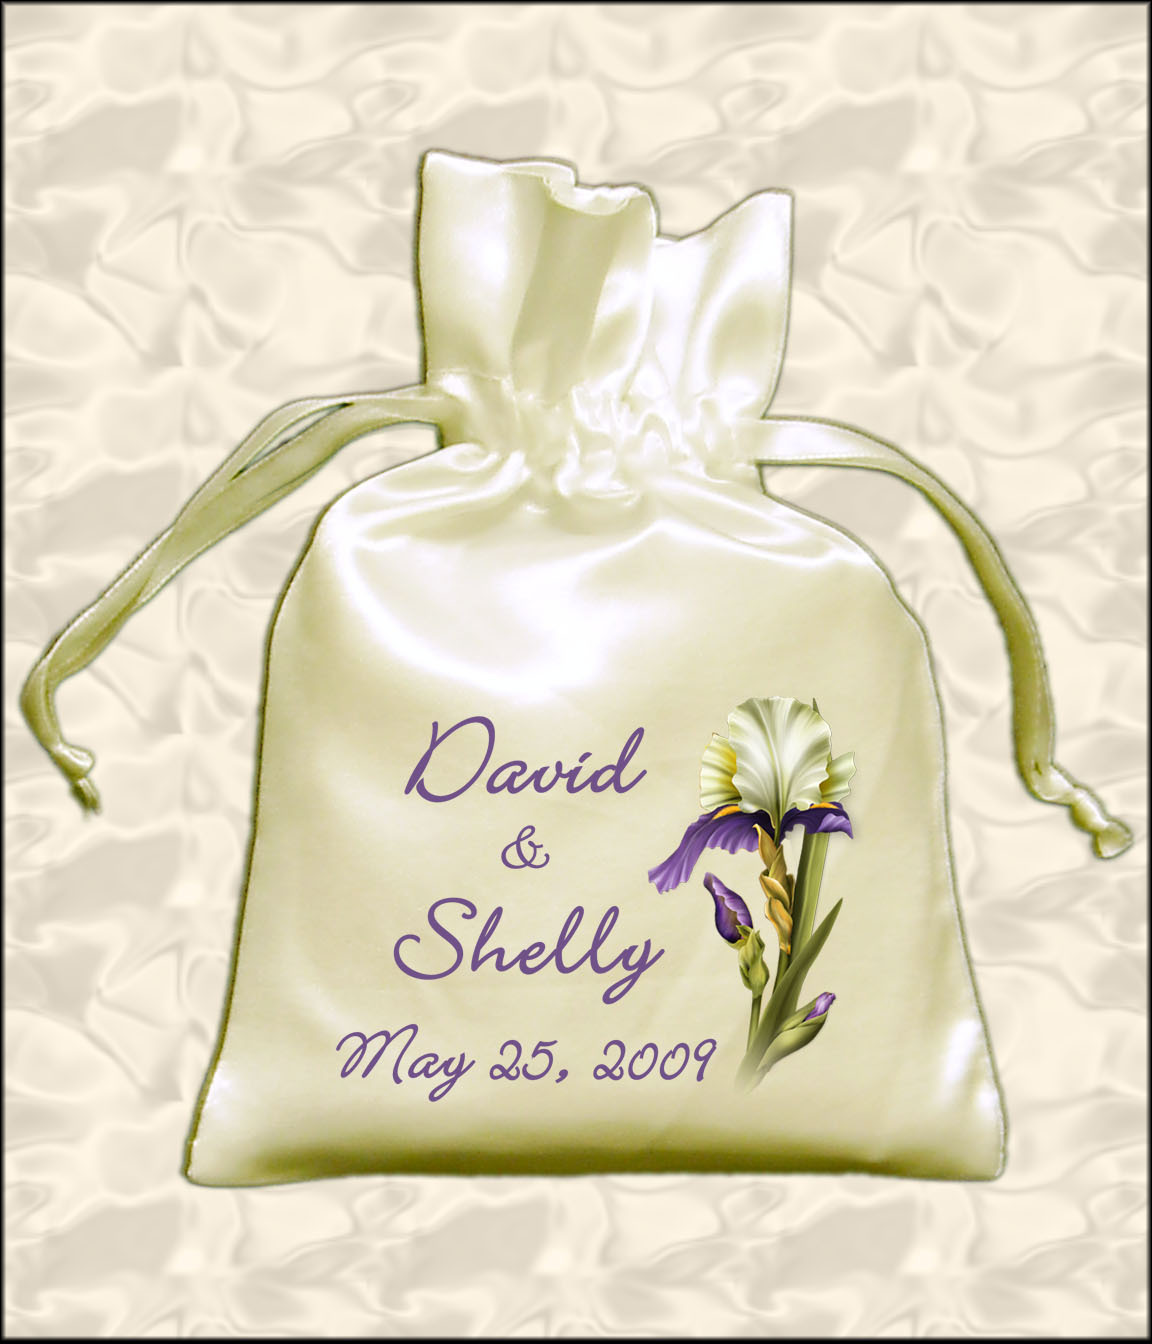 Favors & Gifts, Favors, Spring, Wedding, Personalized, Cheap